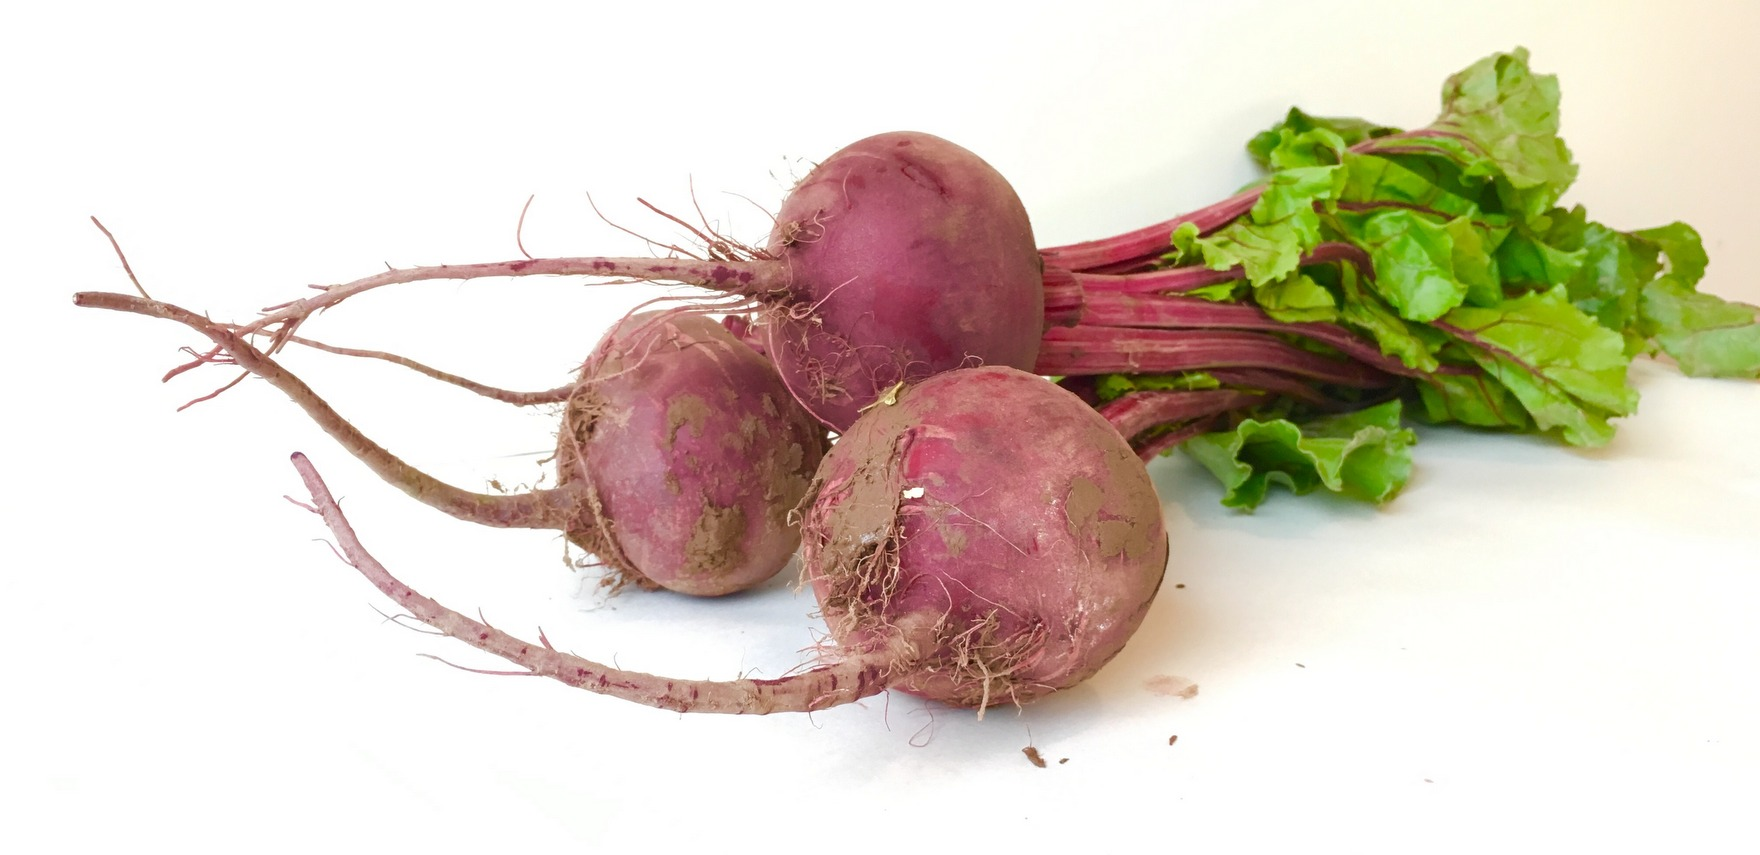 Beets from farmer's market